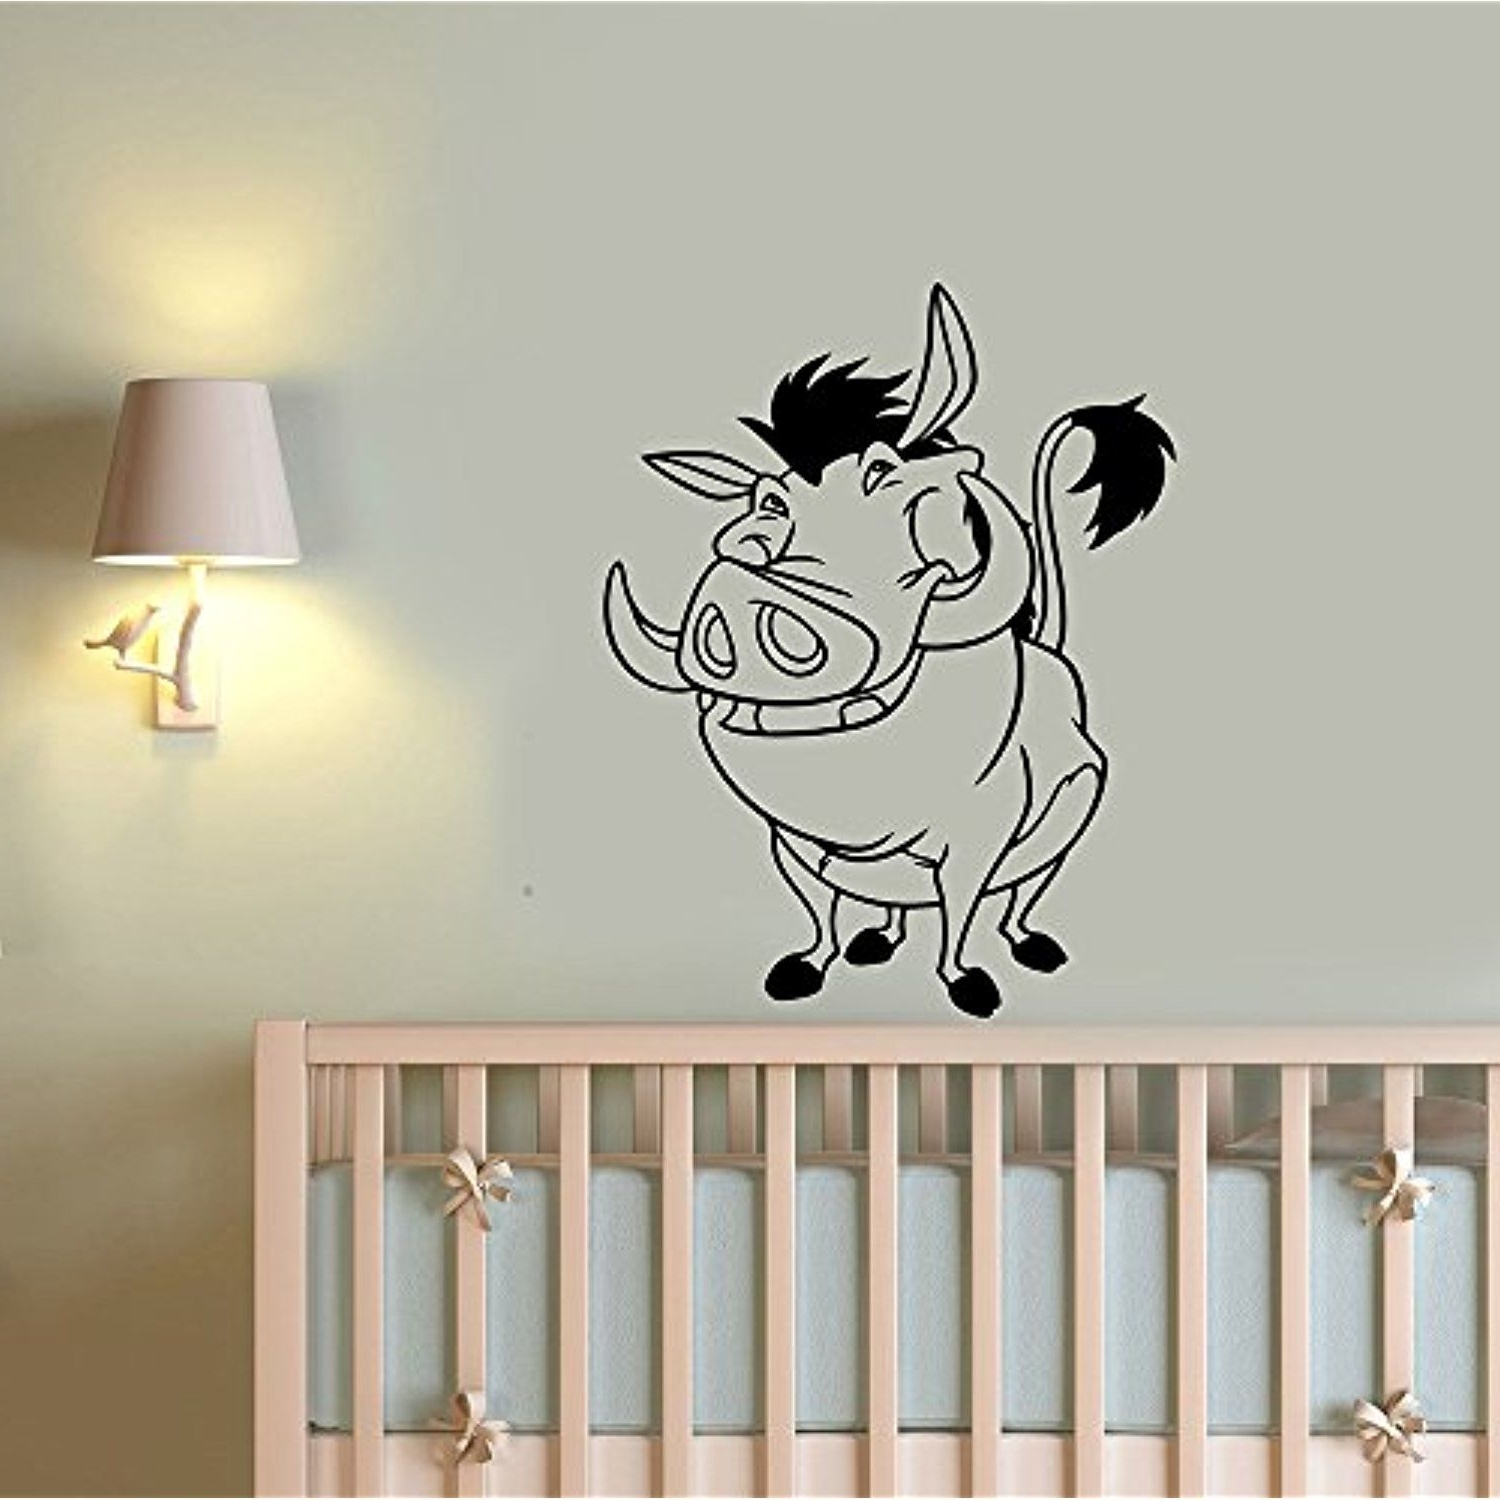 Preferred Lion King Wall Art Regarding Pumba Lion King Wall Art Decal Vinyl Sticker Housewares Disney (View 11 of 15)